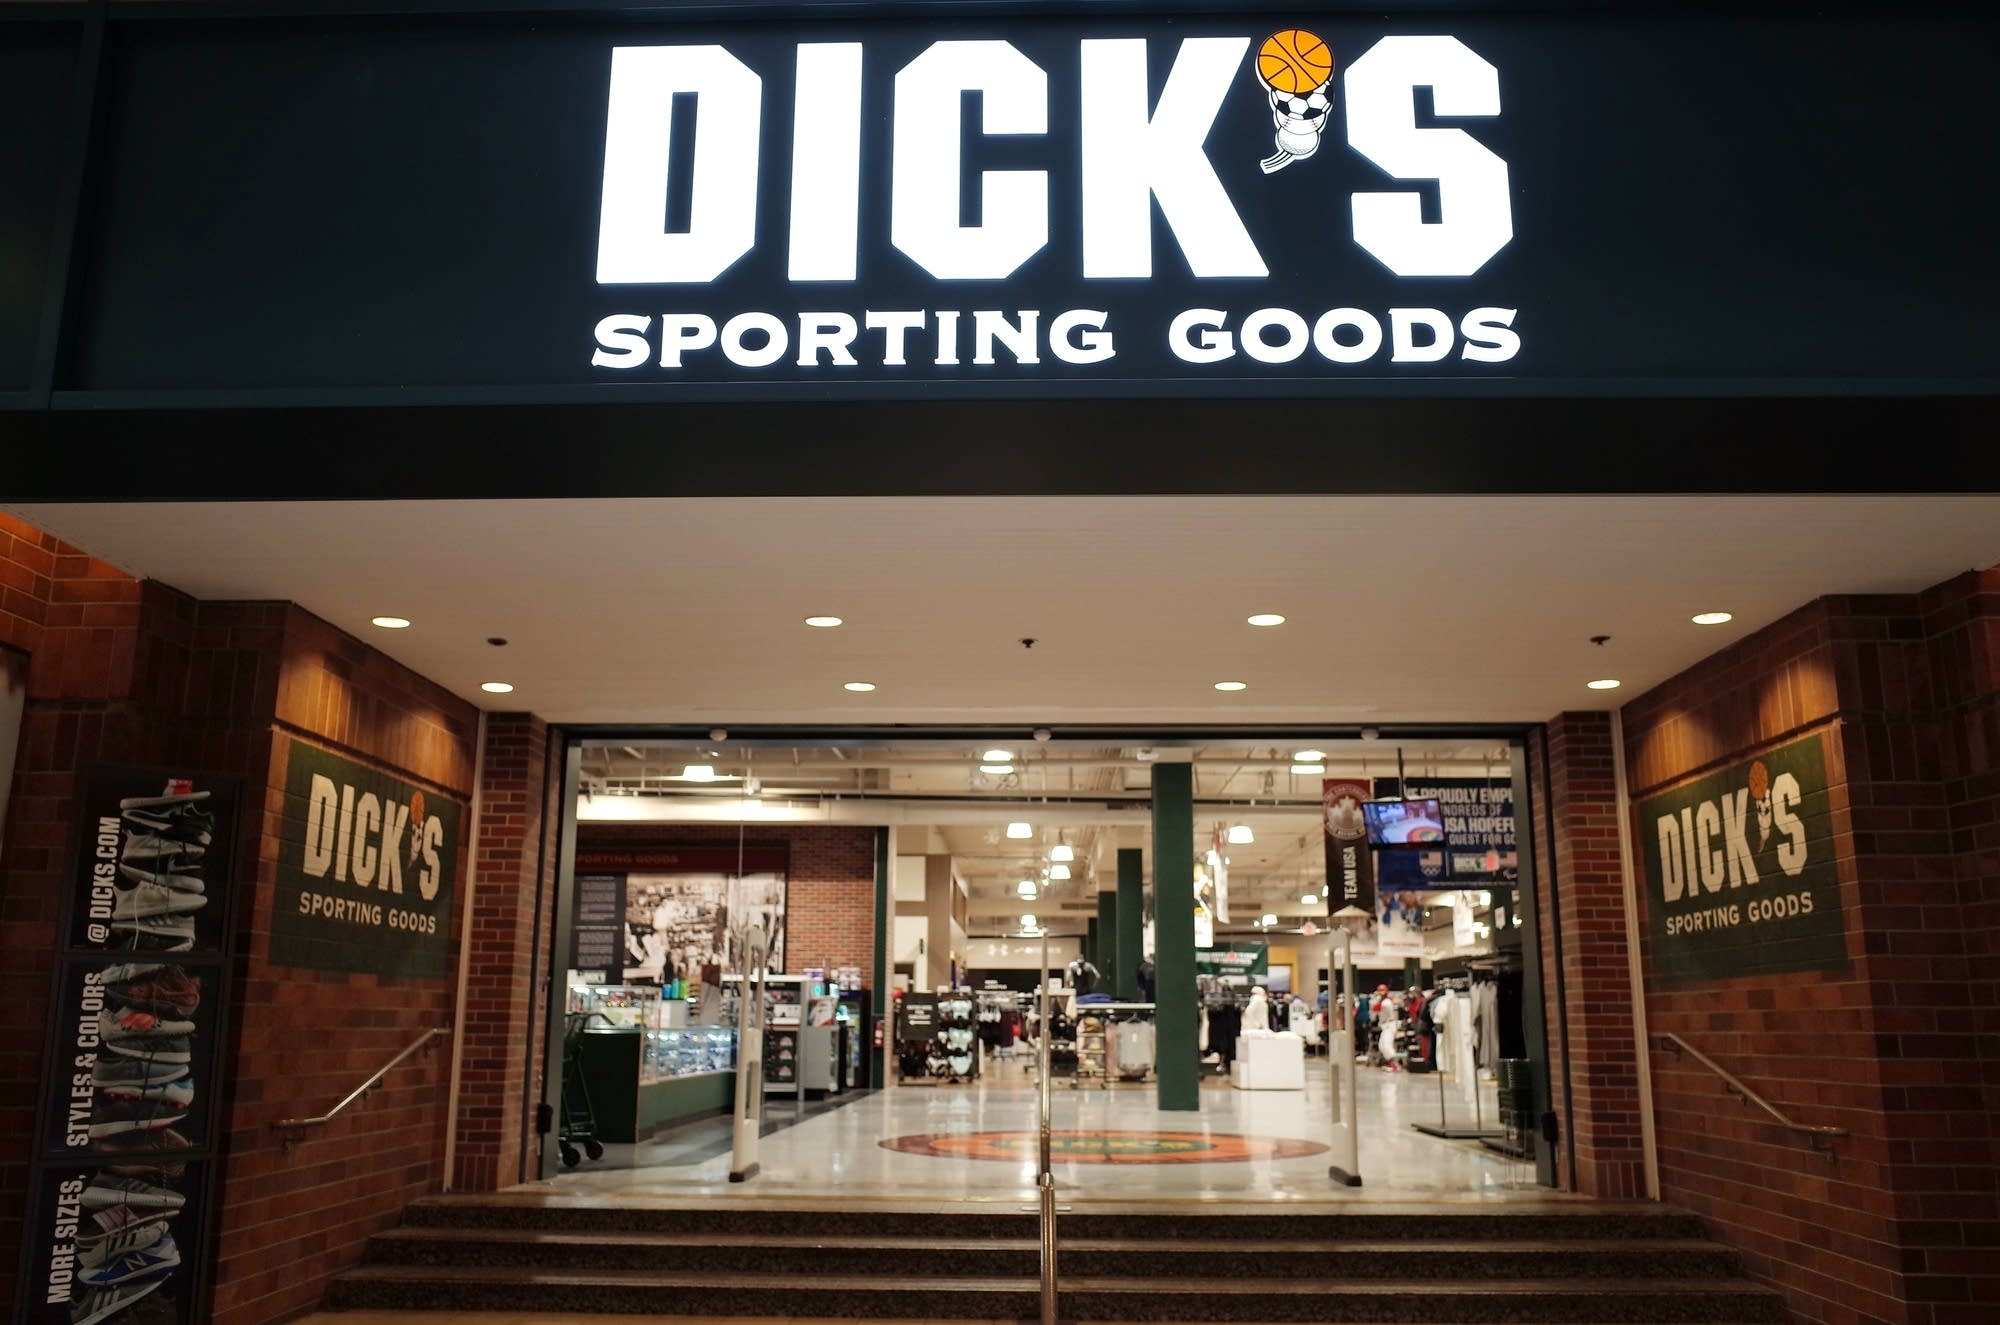 The entrance to a Dick's Sporting Goods store.